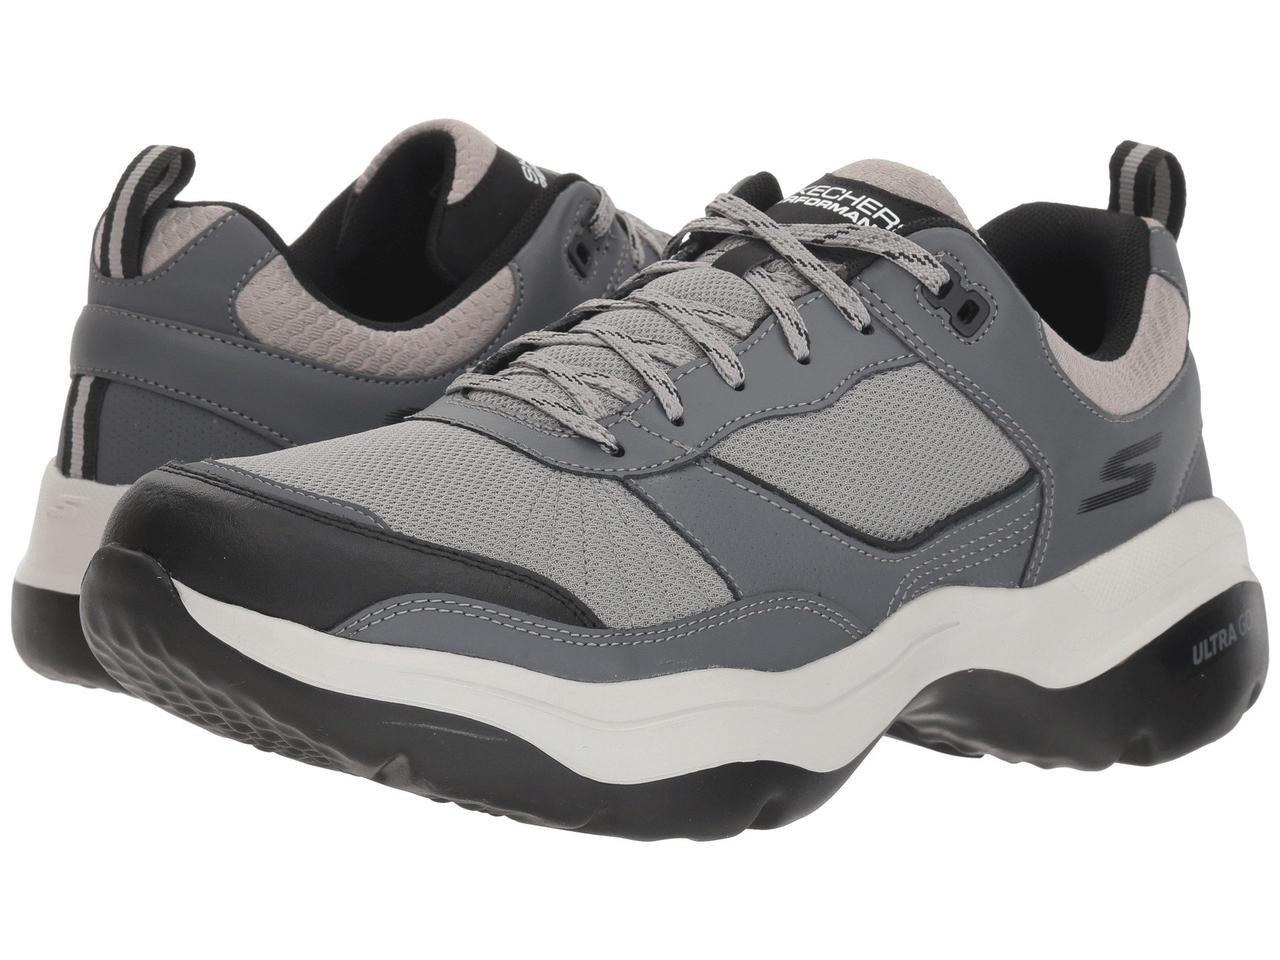 d575e37afe90 Кроссовки Кеды (Оригинал) SKECHERS Performance Mantra Ultra 54797  Charcoal Black - TopUSA